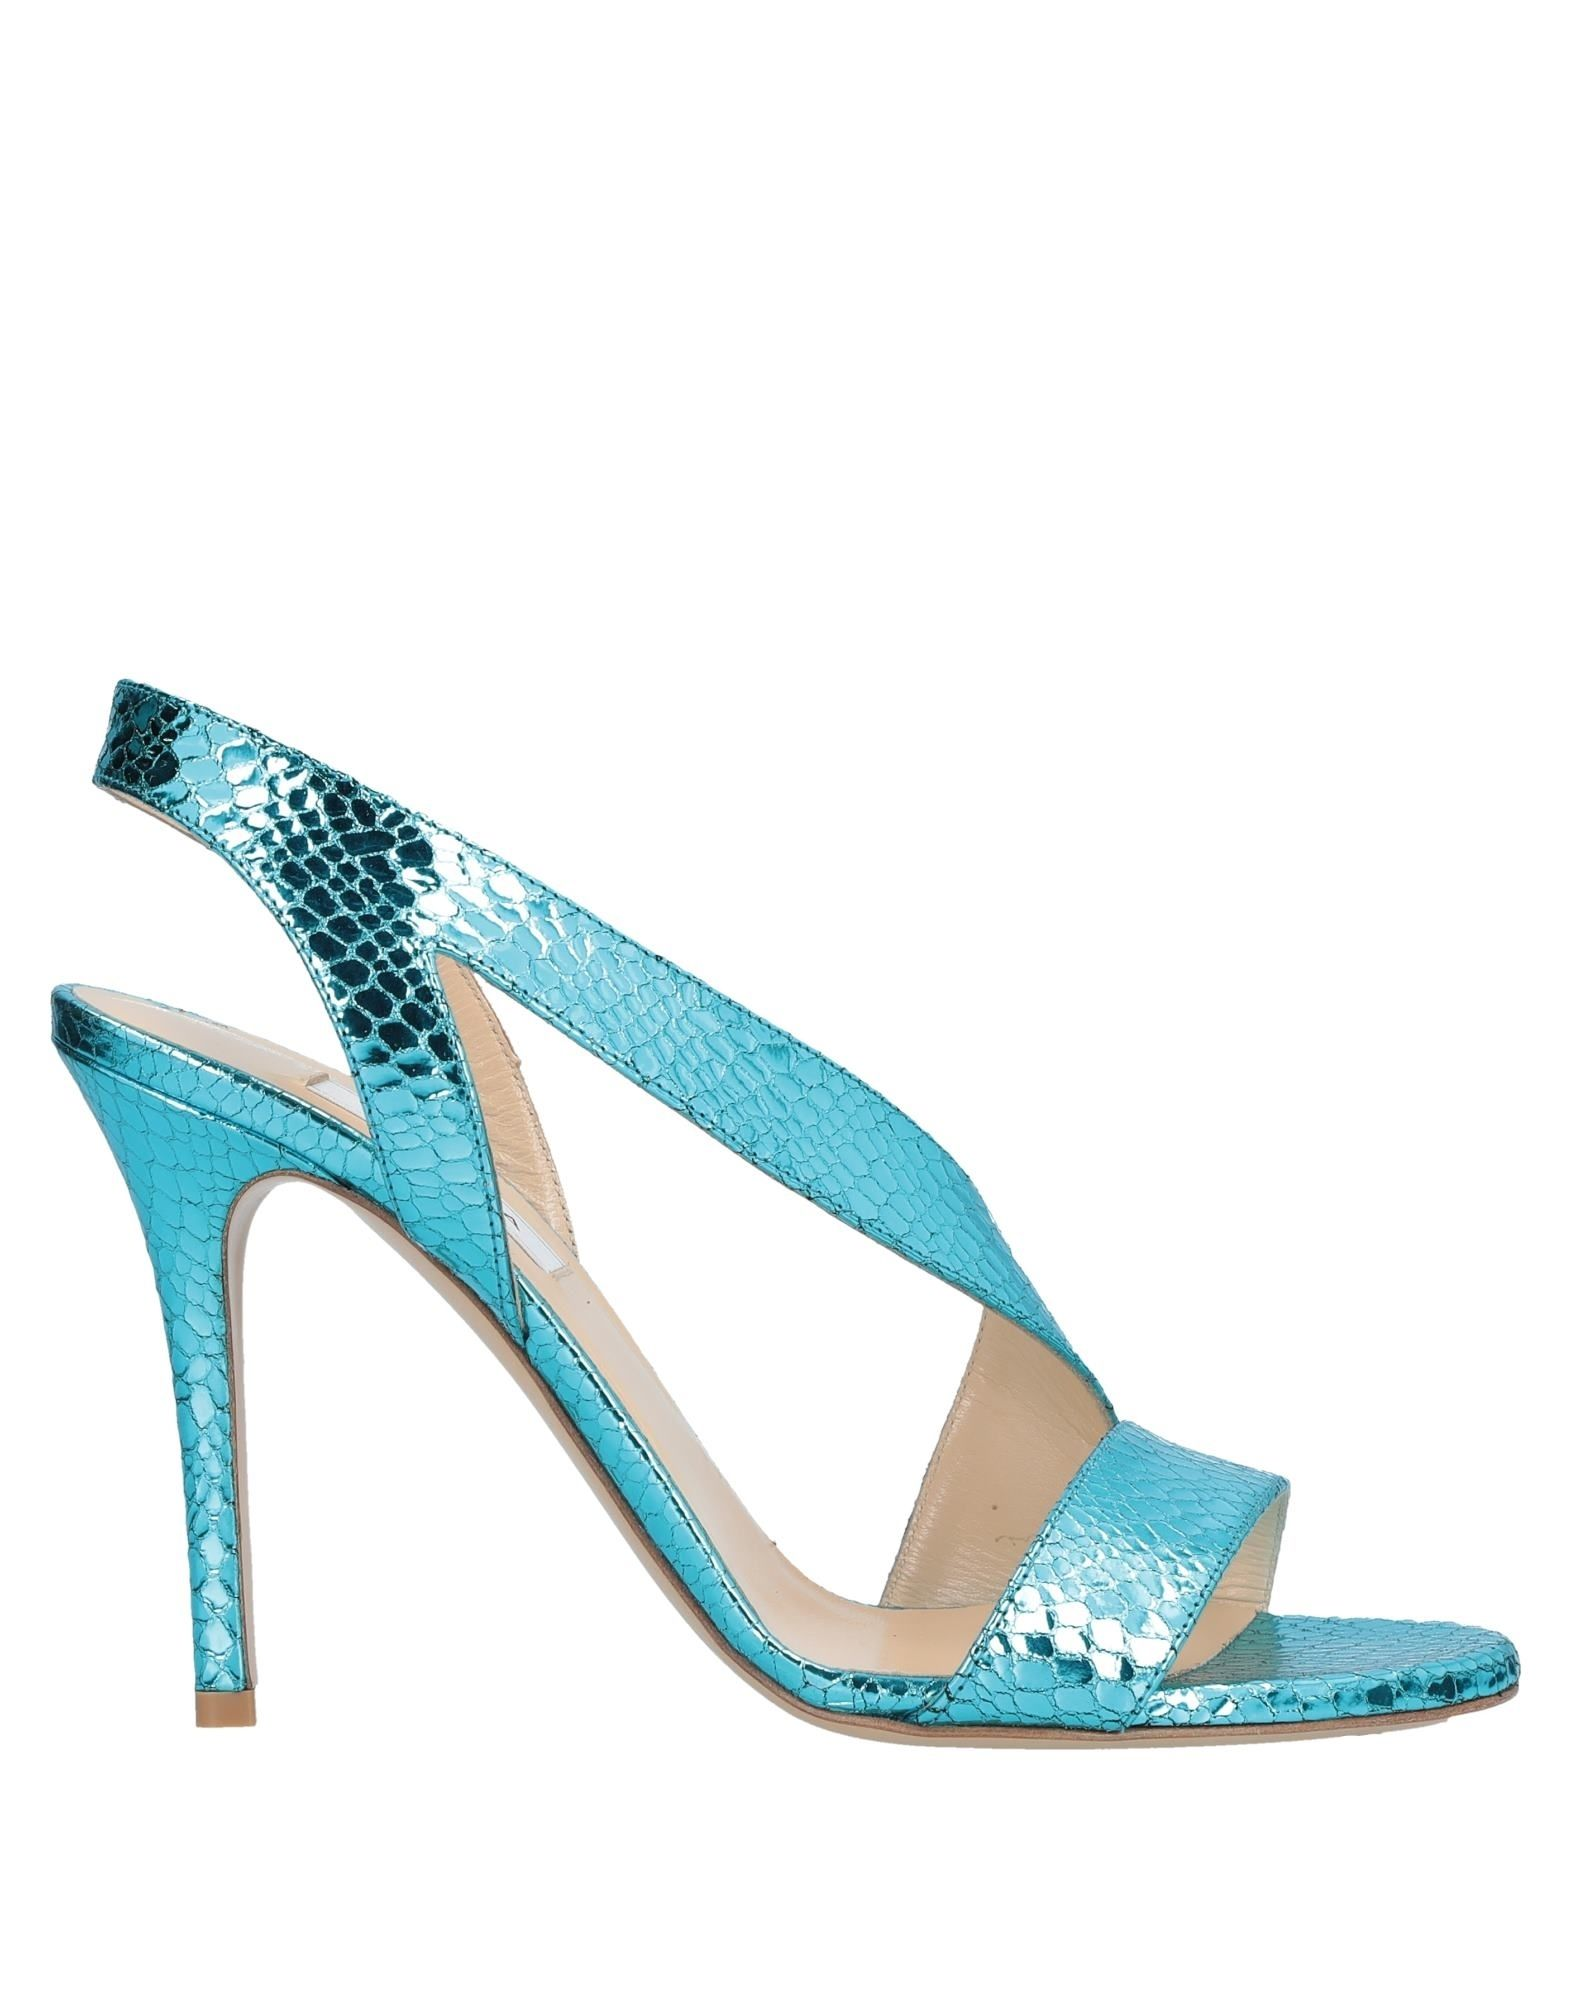 SEMILLA Sandals in Turquoise